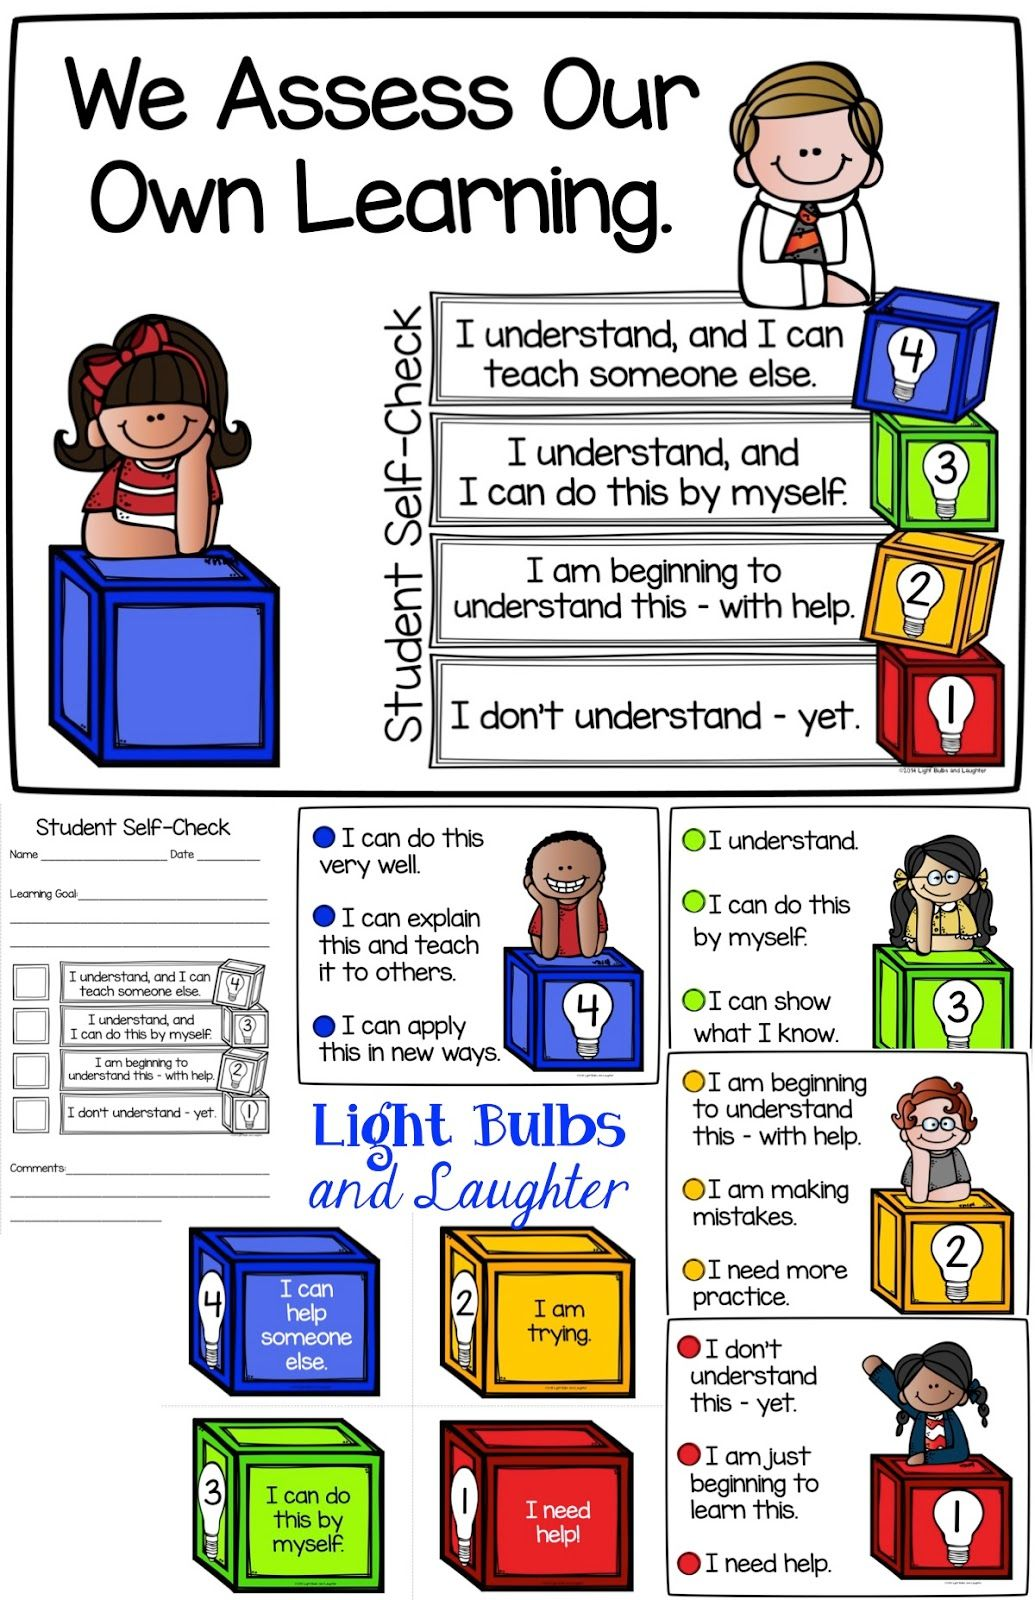 Assessment clipart student thinking. Metacognition helping students assess